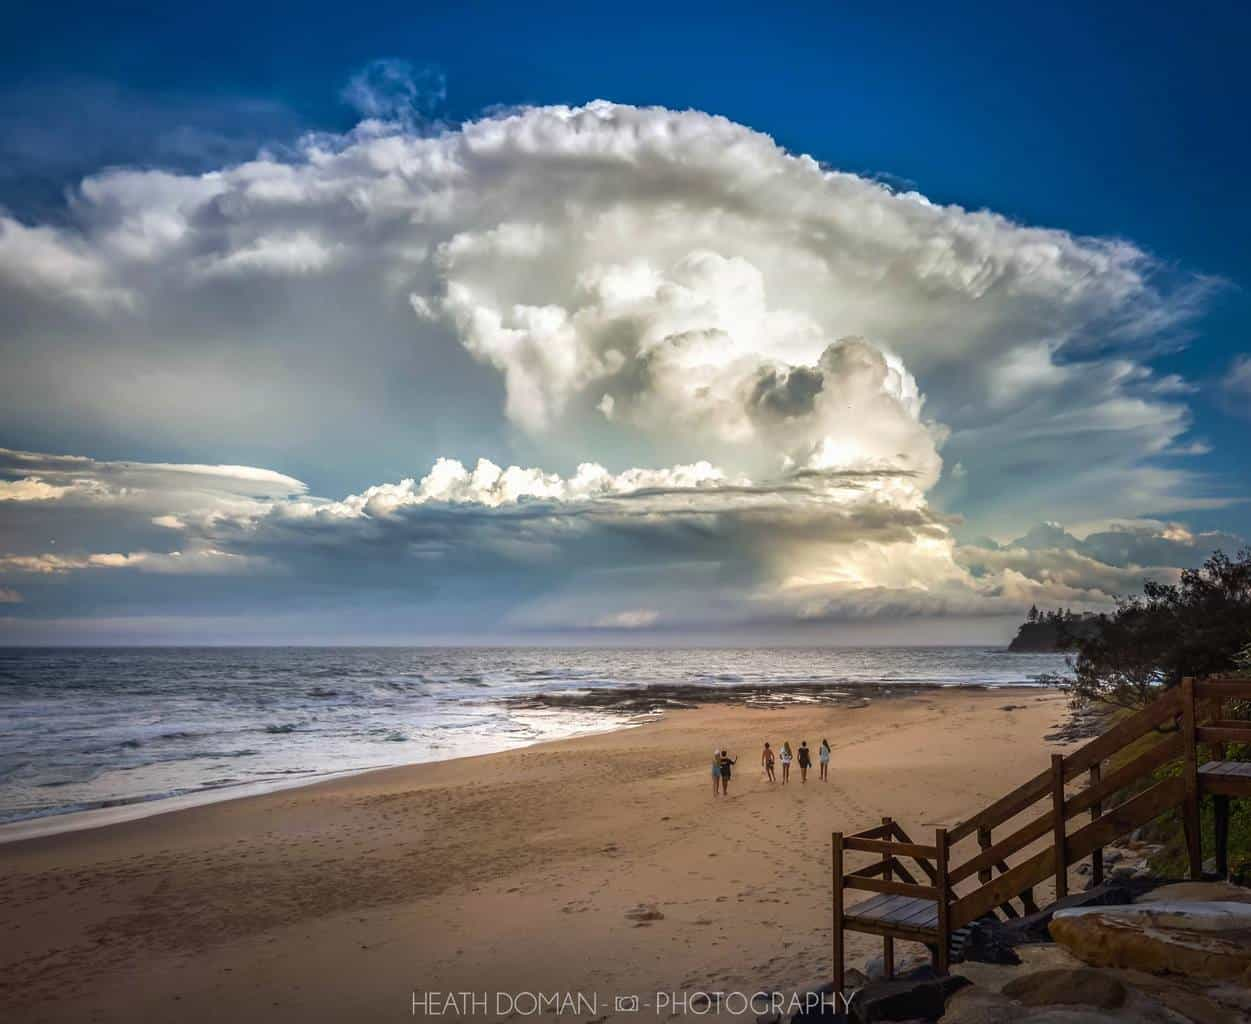 Epic super cell on Monday from Caloundra Australia